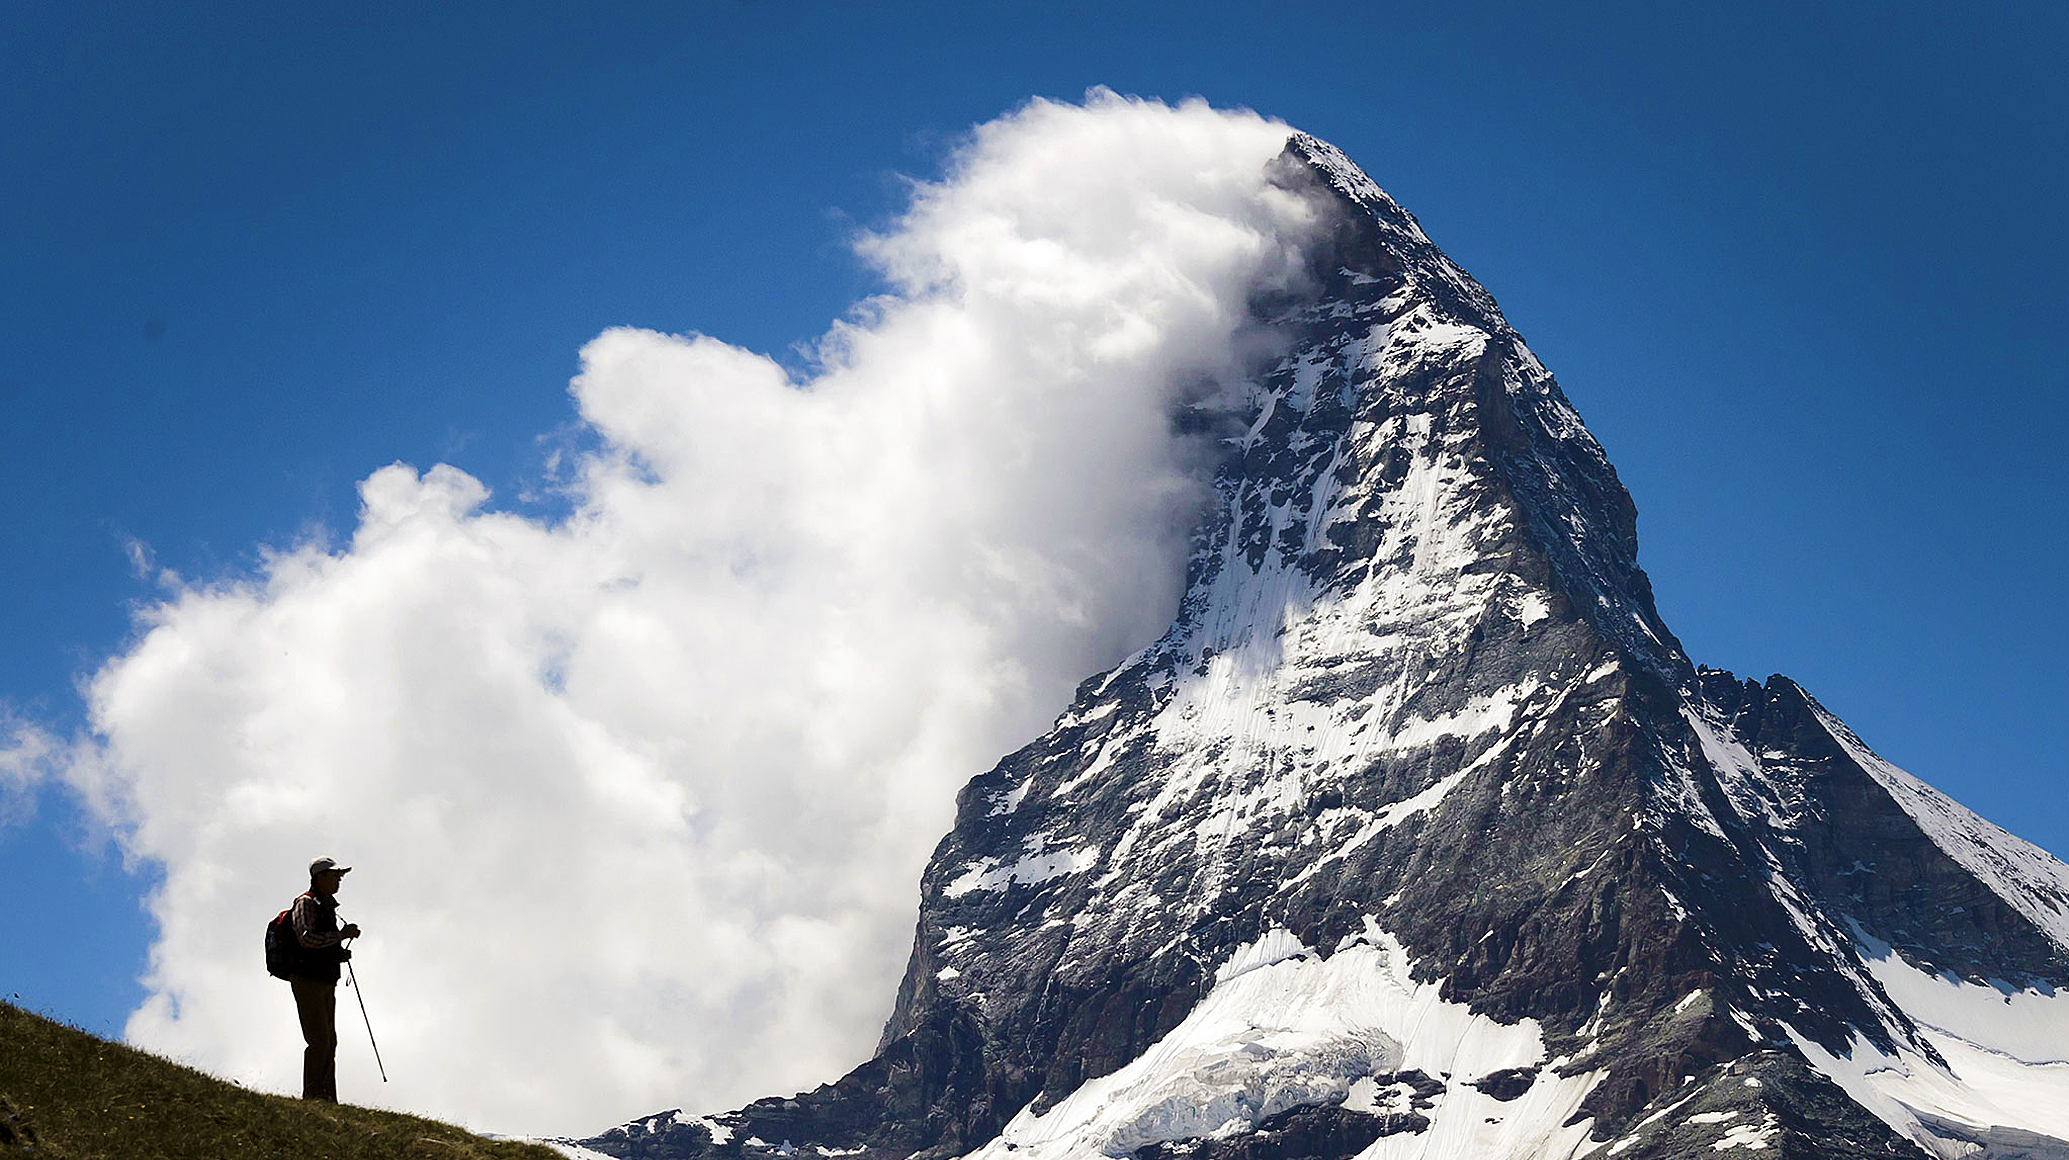 matterhorn-france-by-fabrice-coffrini-afp-getty-images.jpg